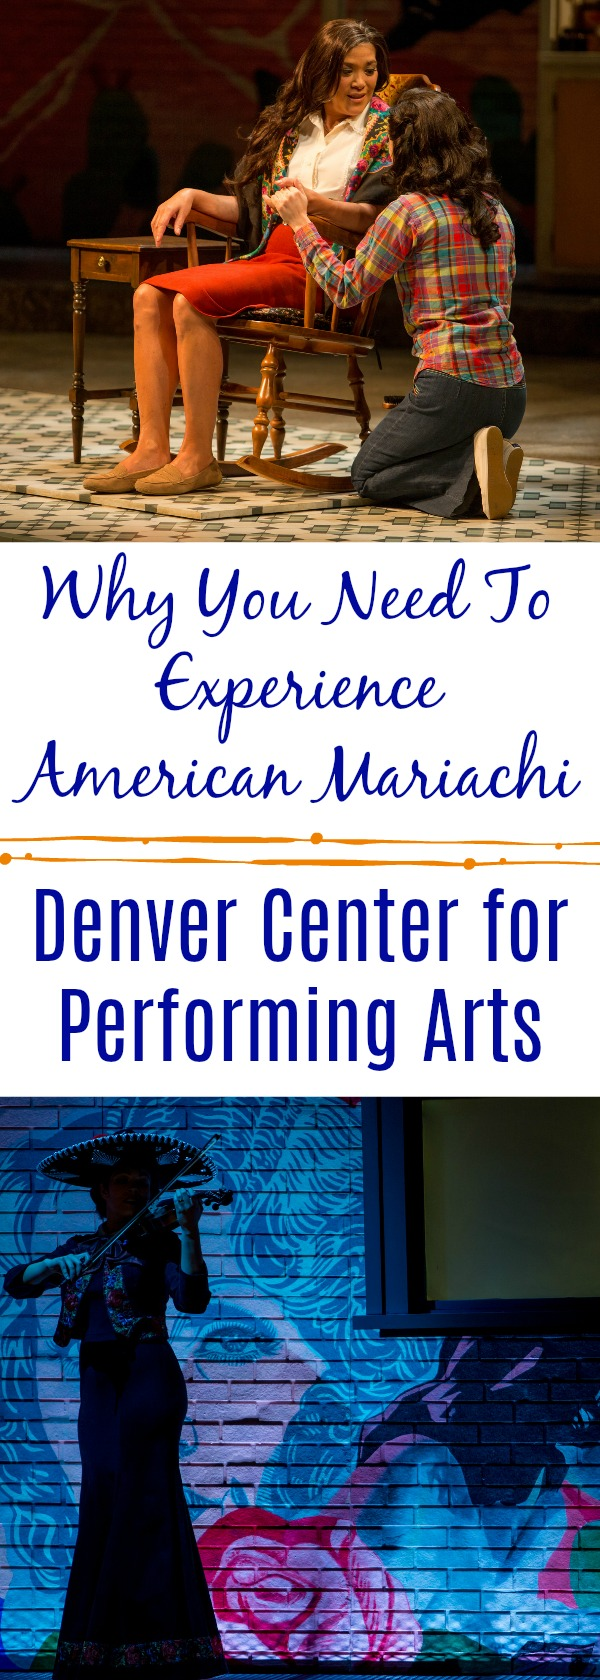 American Mariachi, American Mariachi Denver Colorado, By José Cruz González, Directed by James Vásquez, Why You Need To Experience American Mariachi at Denver Center for Performing Arts, #hosted #DCPA #theater #Denver